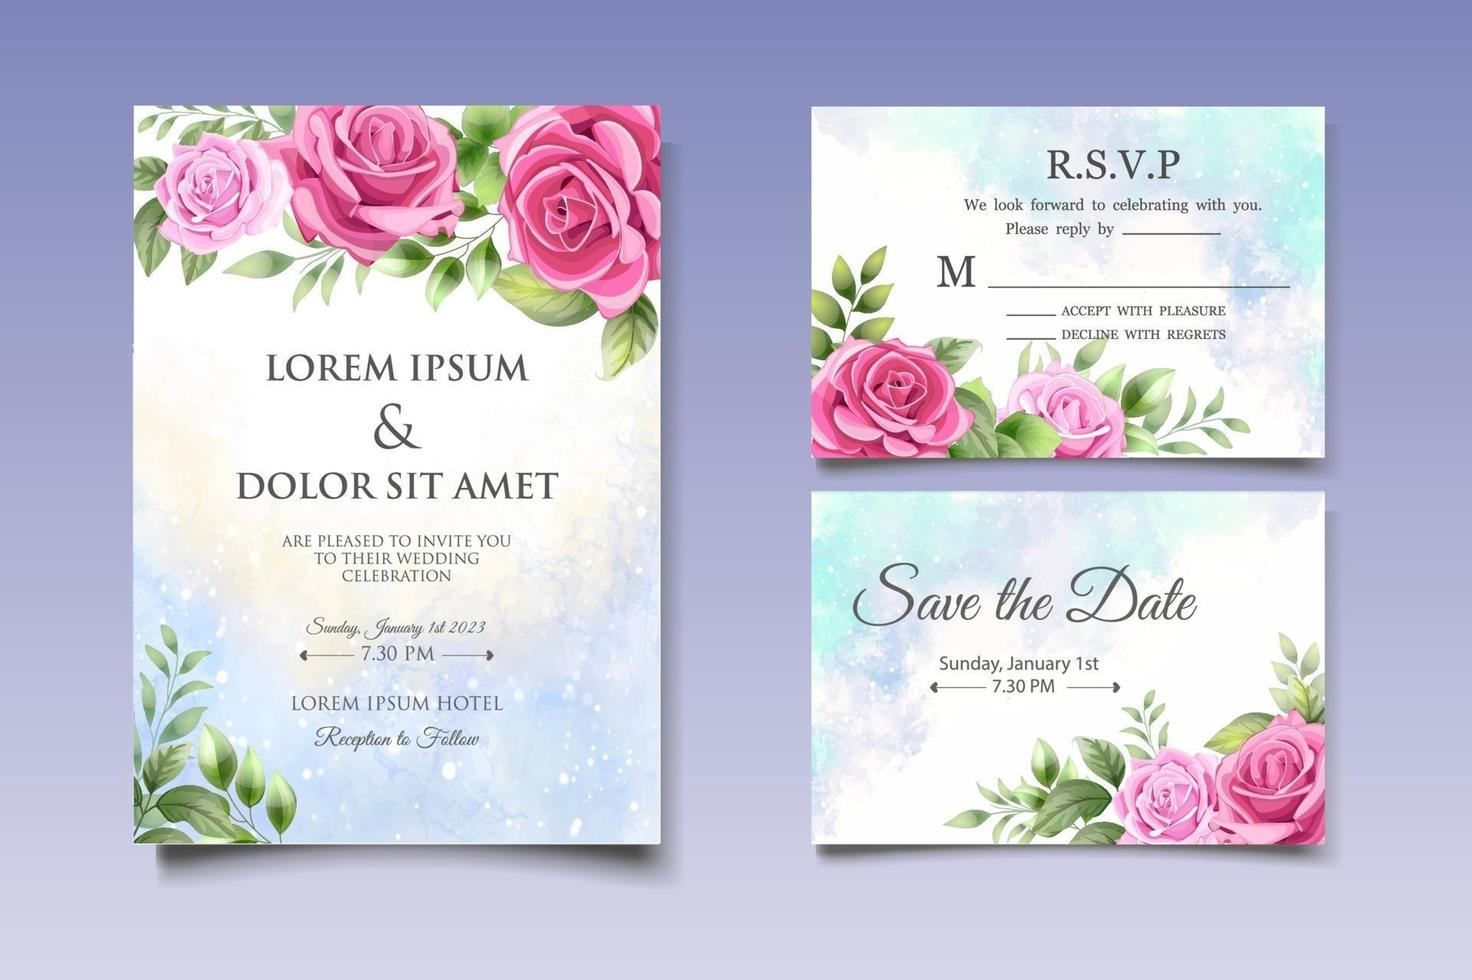 Wedding invitation card with beautiful flowers and leaves vector